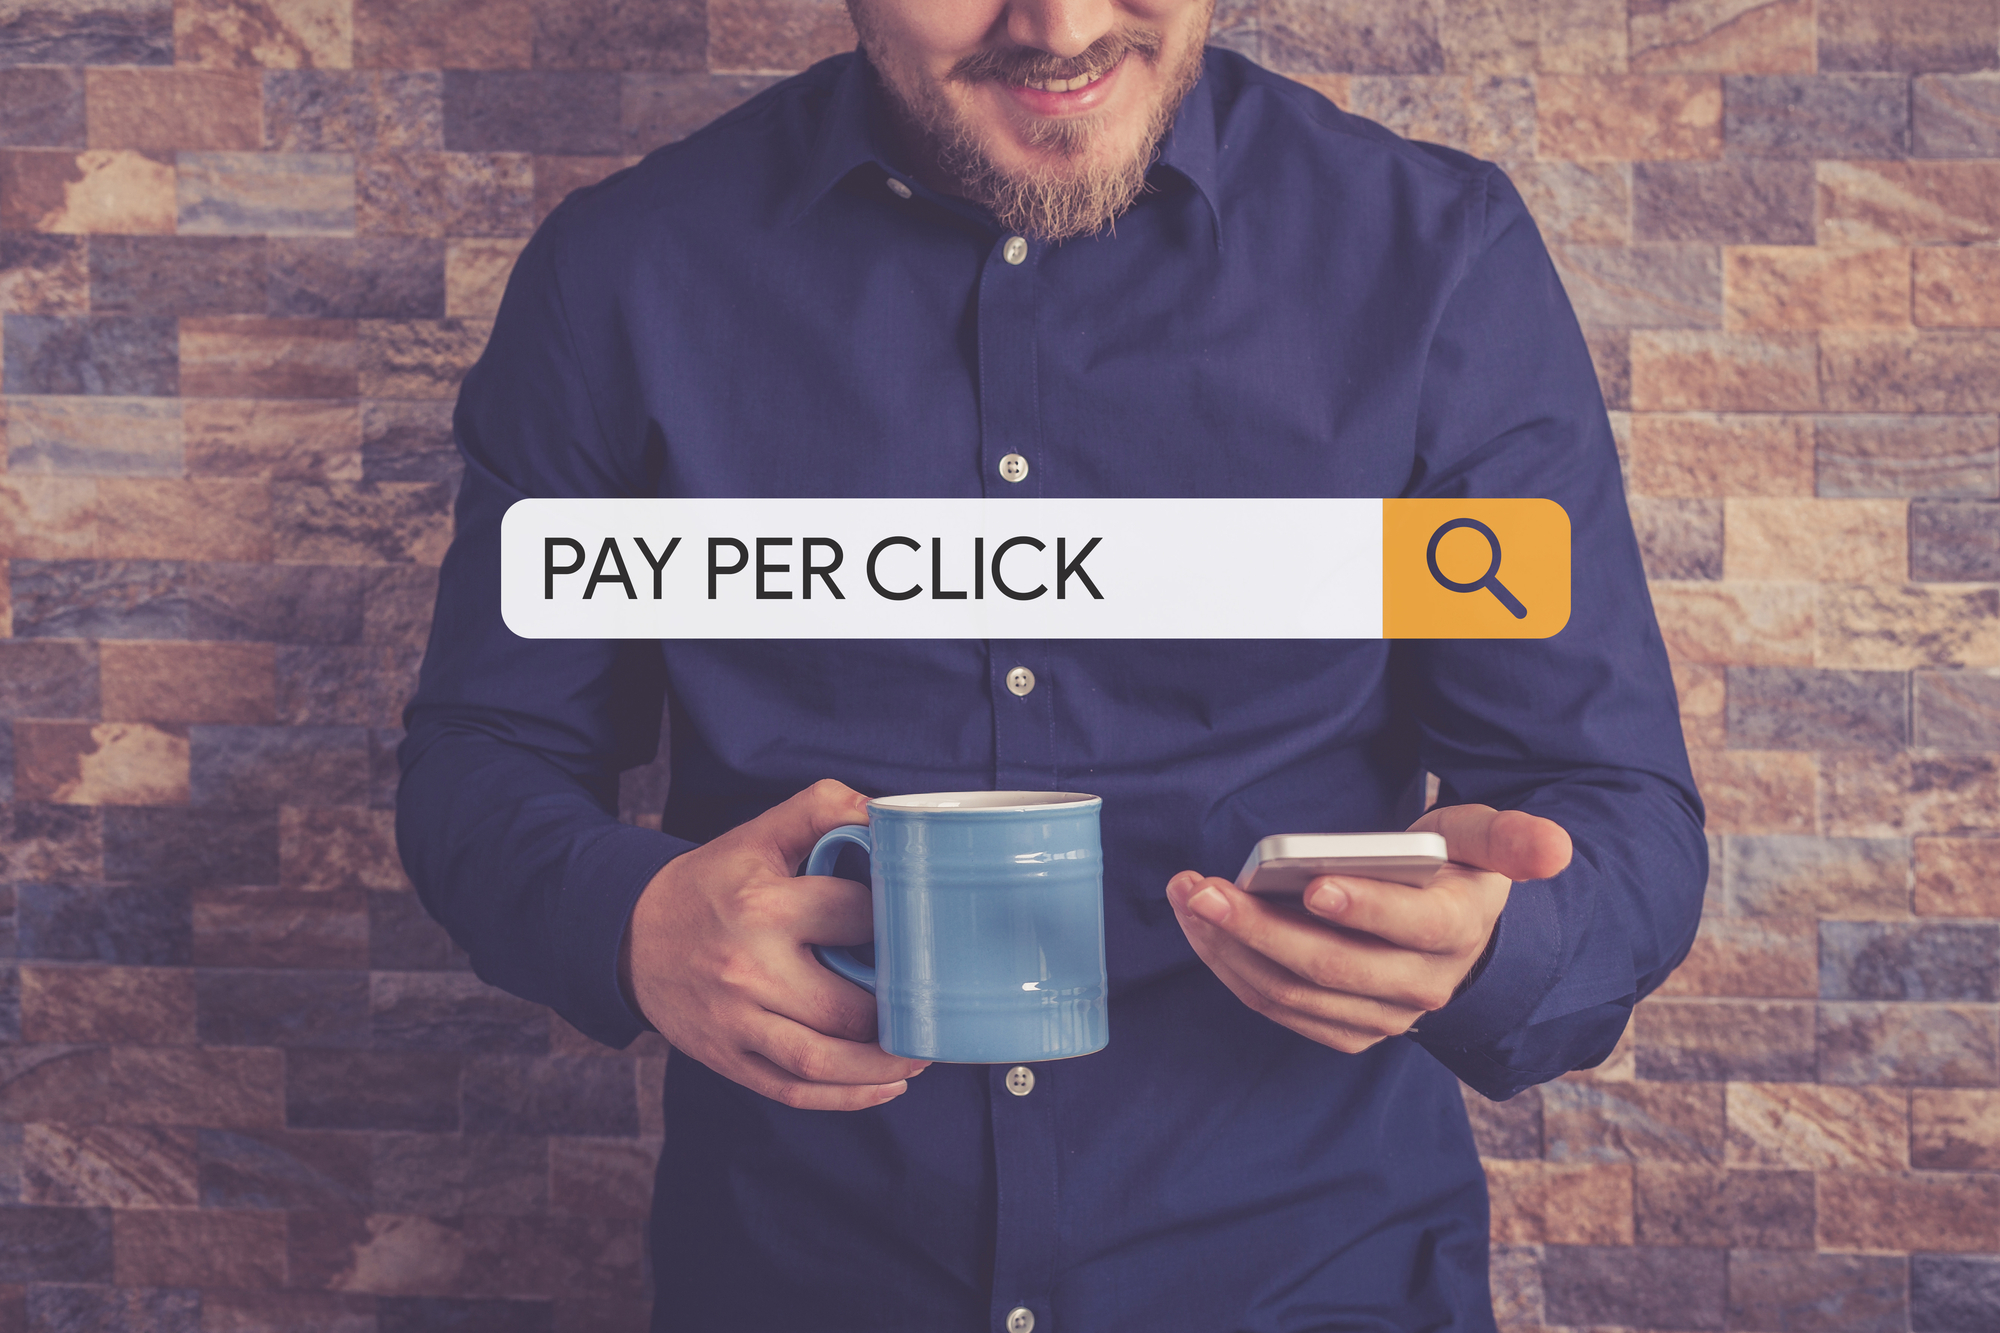 man checking his phone, searching for pay per click services.